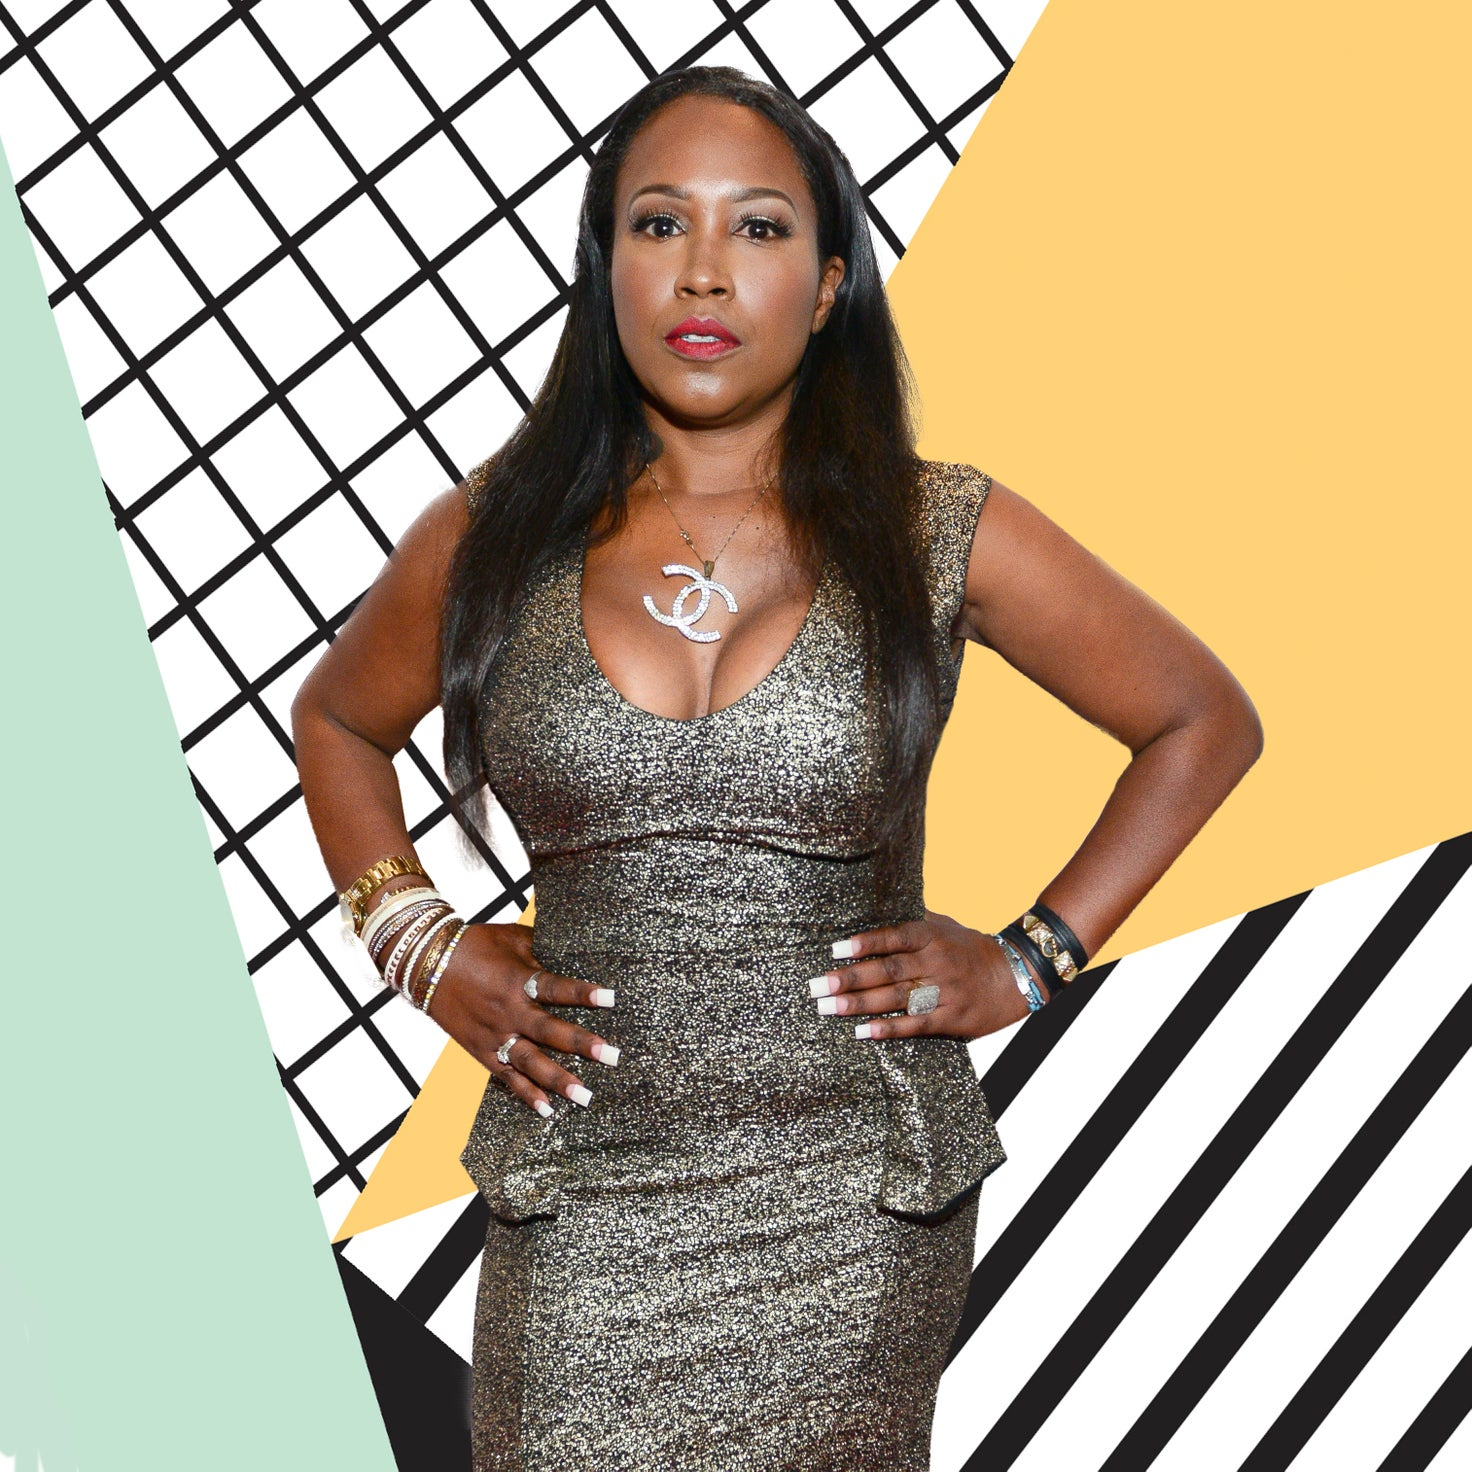 LL Cool JOn Video Of Maia Campbell Allegedly Asking For Drugs: 'You Can't Help Someone Who Doesn't Want Your Help'